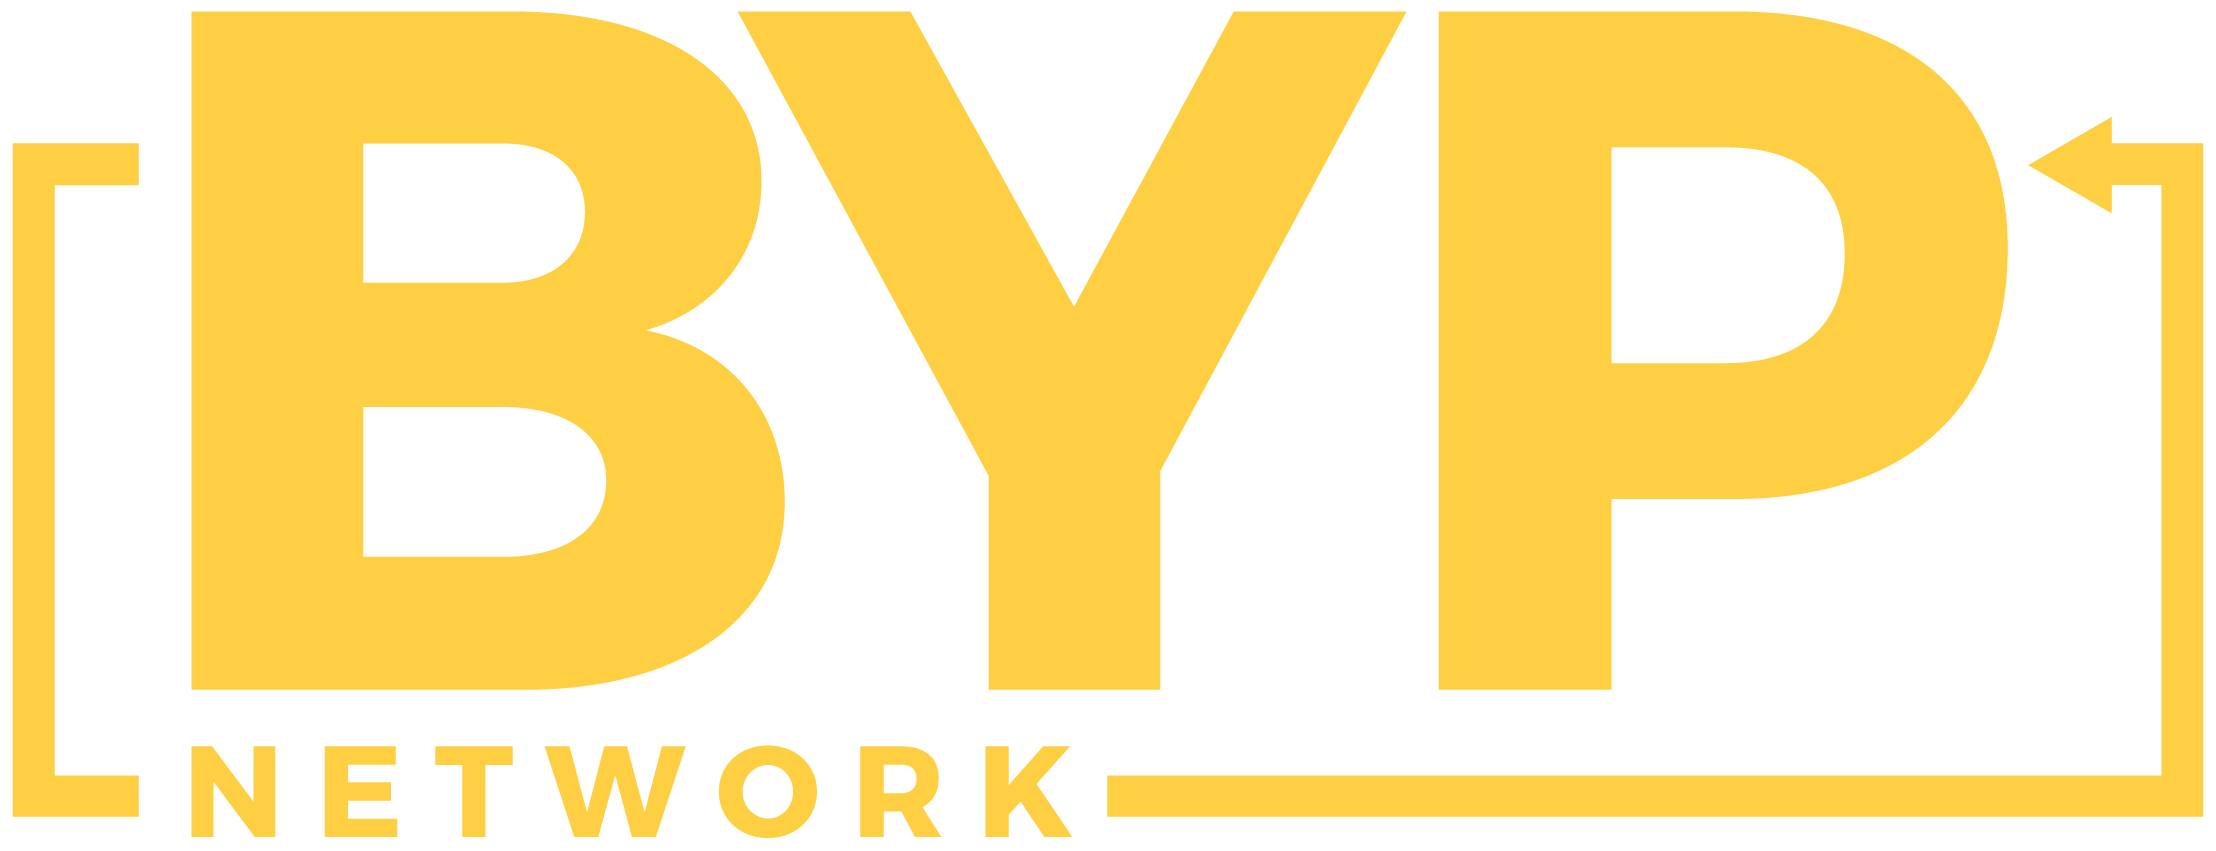 BYP Network logo